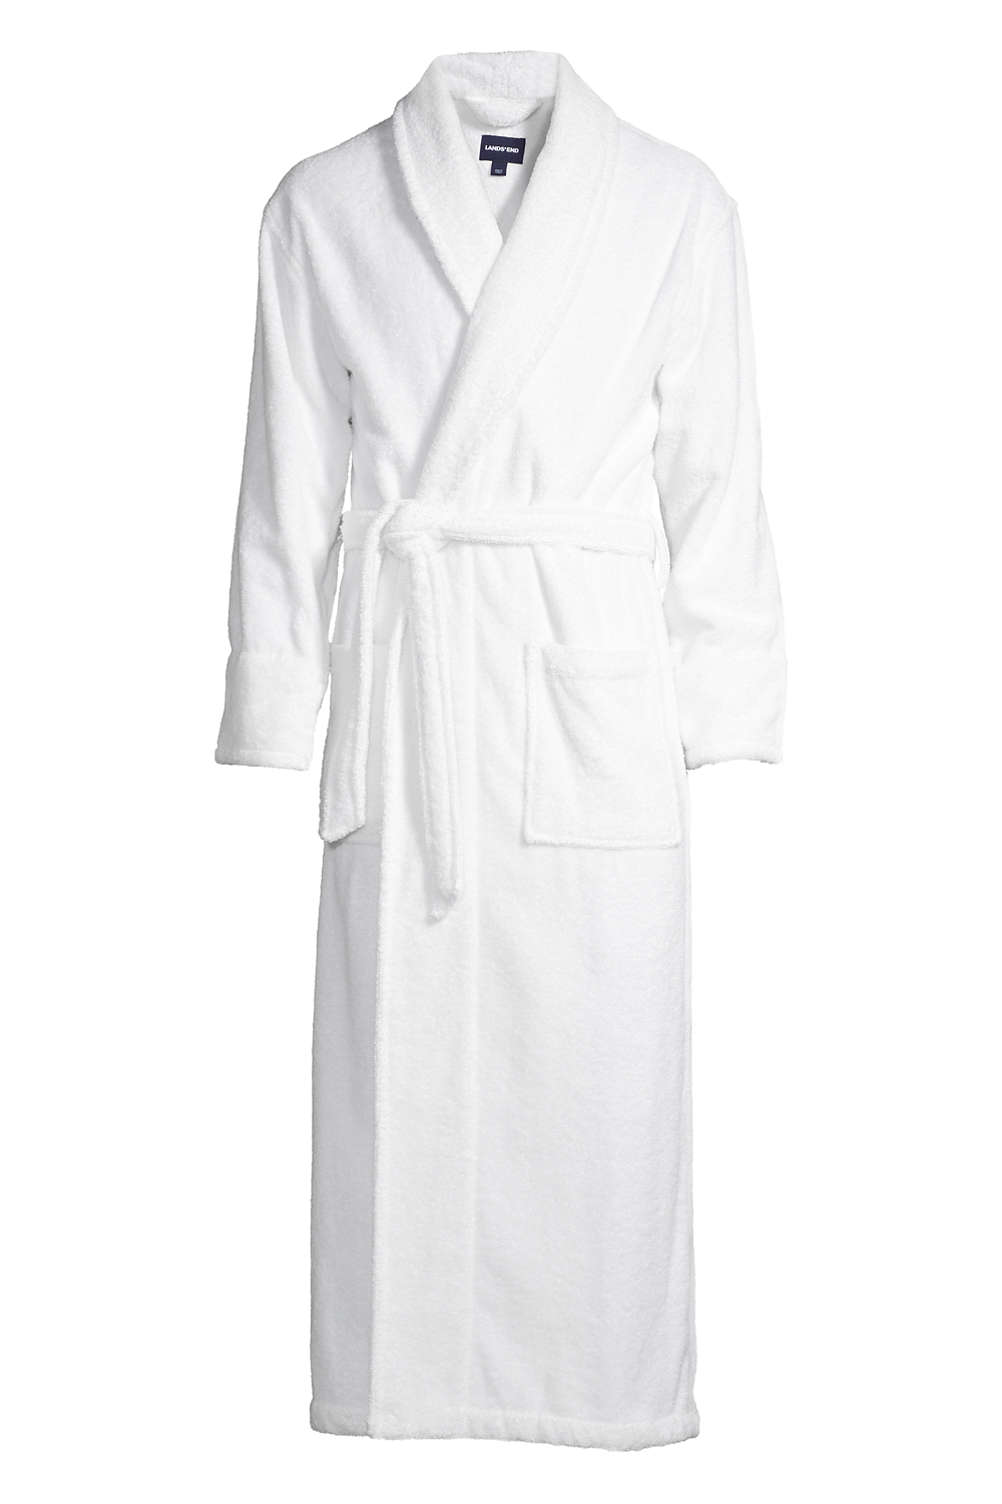 6f58843061 Men s Full Length Turkish Terry Robe from Lands  End